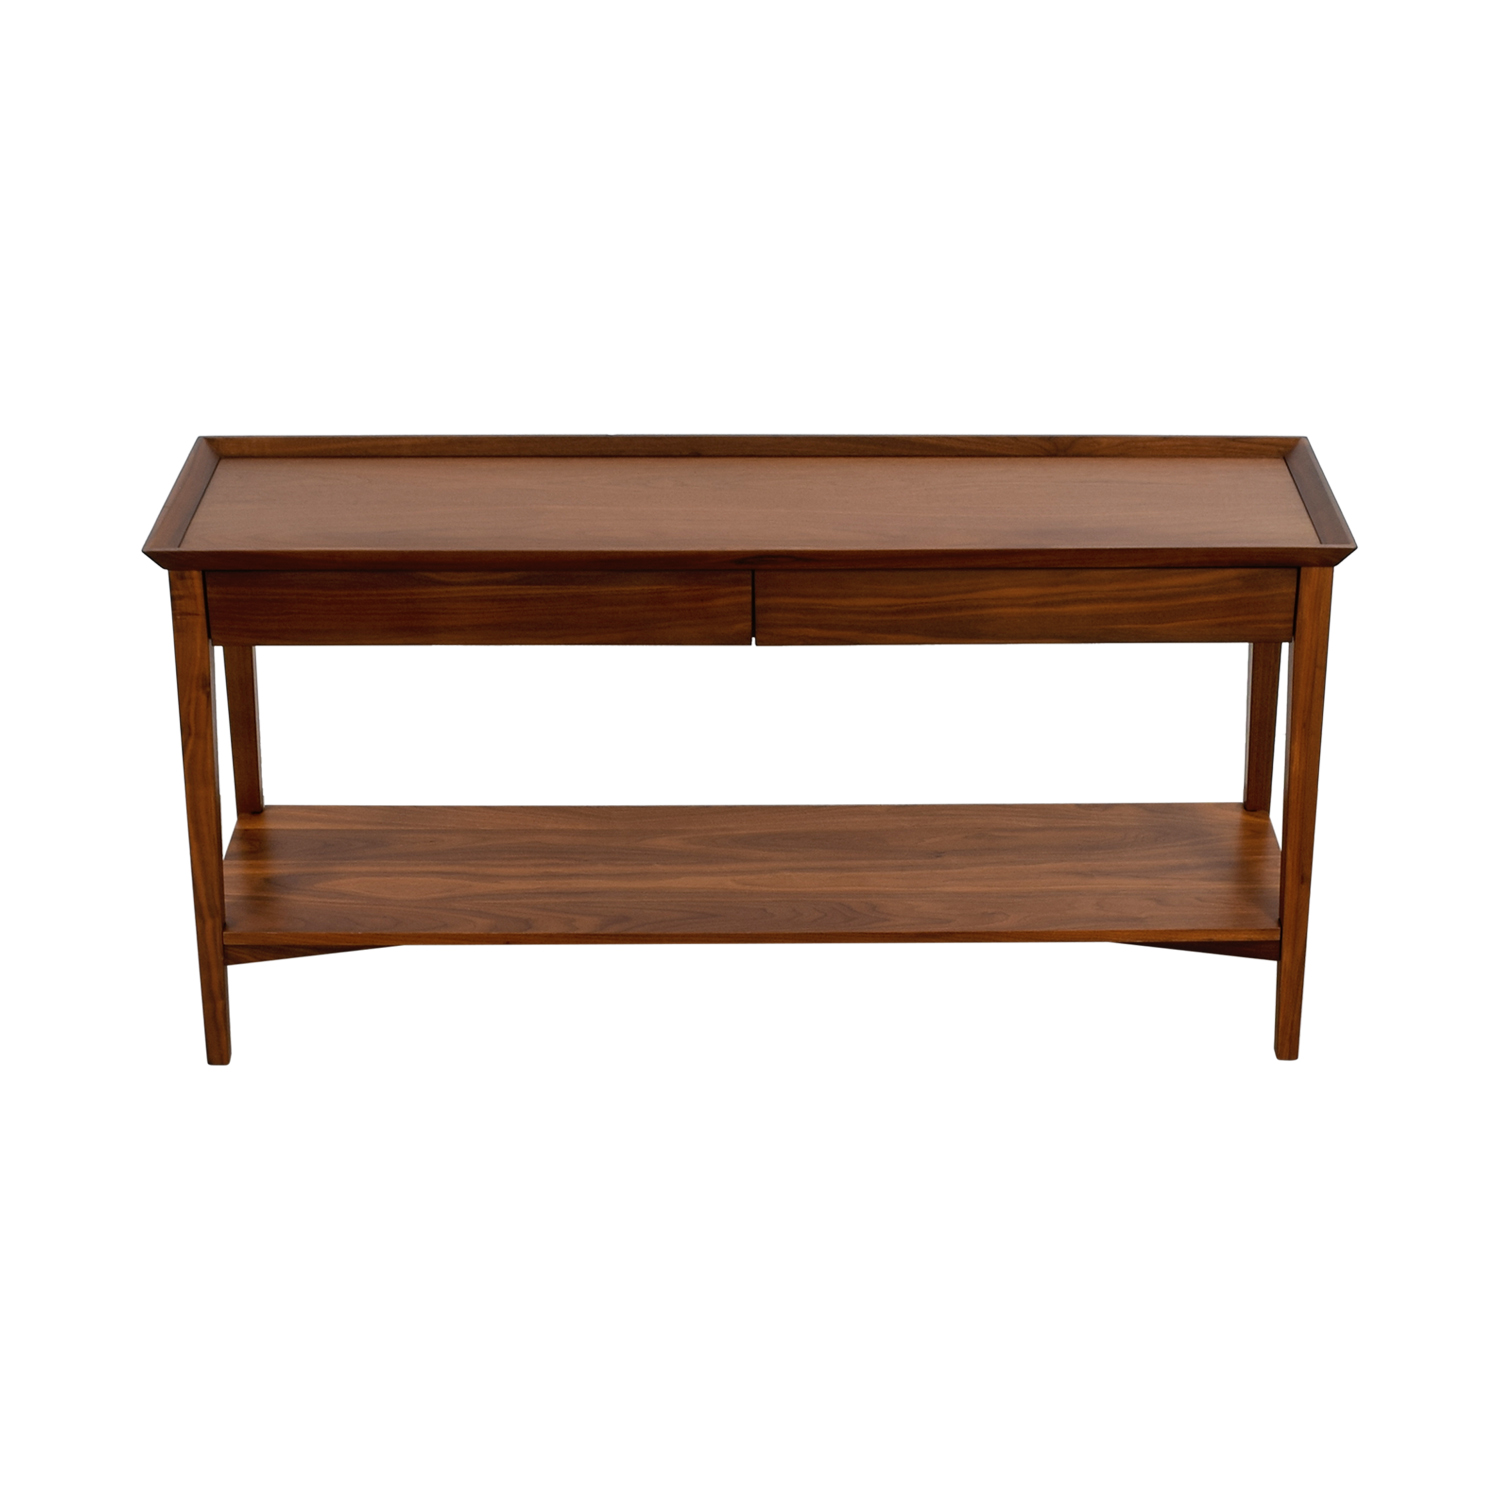 CB2 CB2 Two-Drawer Console Table Accent Tables